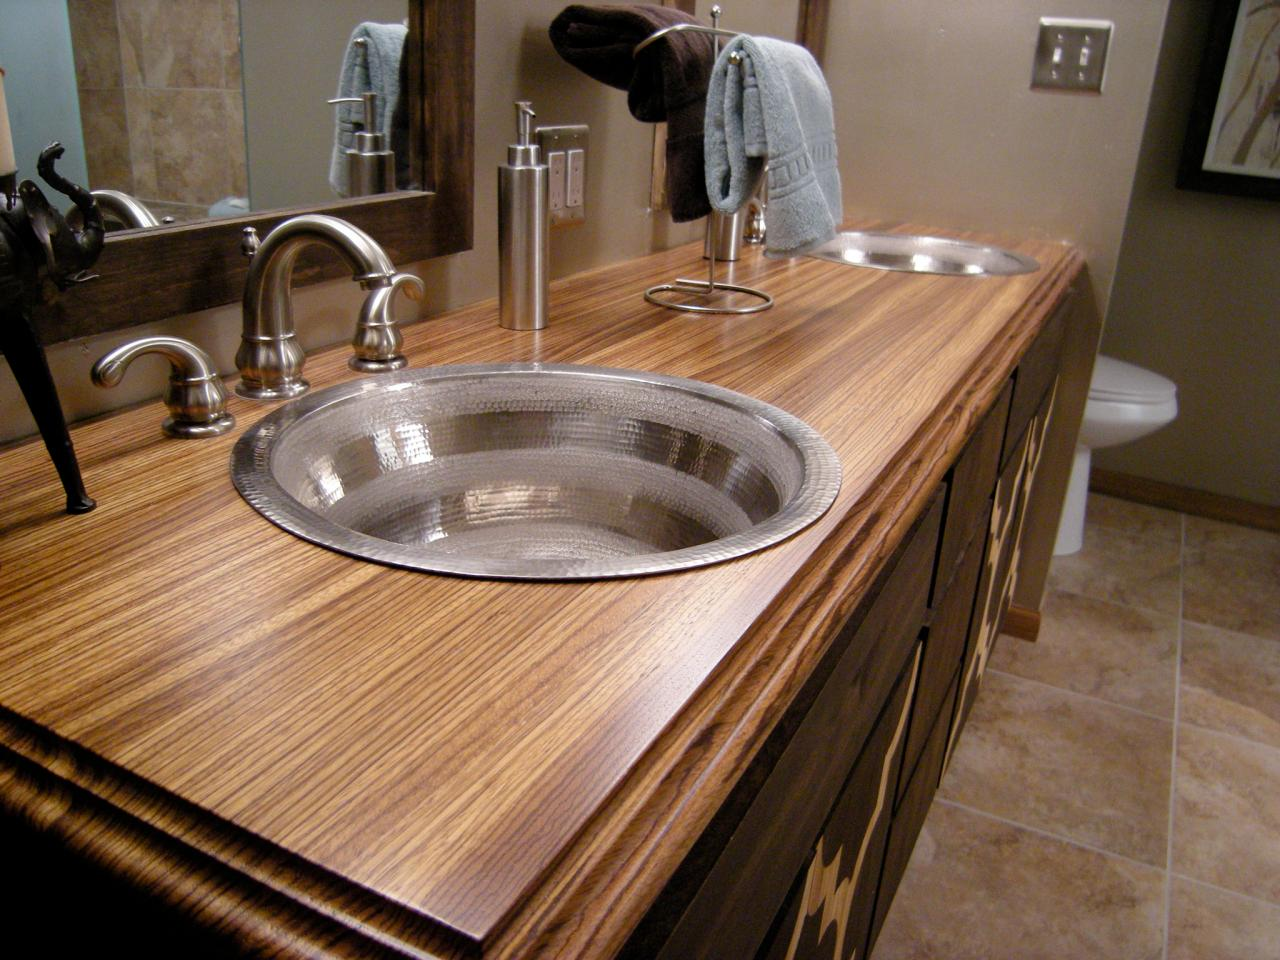 Bathroom Countertop Surface Options : Bathroom Countertop Material Options HGTV